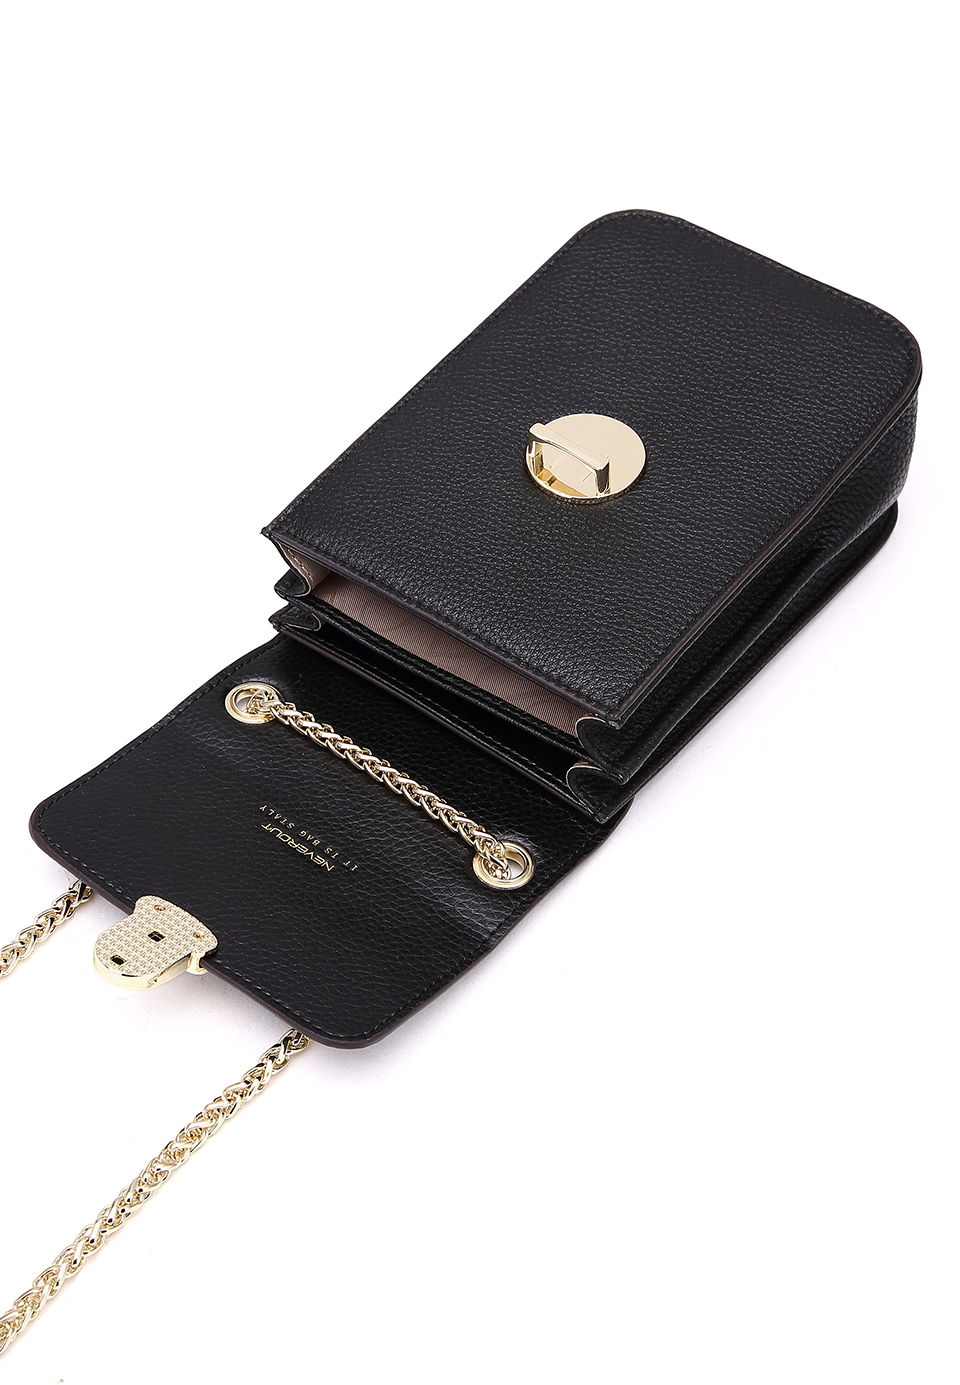 NEVEROUT Genuine Leather Mini Fashion Phone Bags Solid Shoulder Sac a Main Small Flap Bag Crossbody Purse Messenger Bag cases